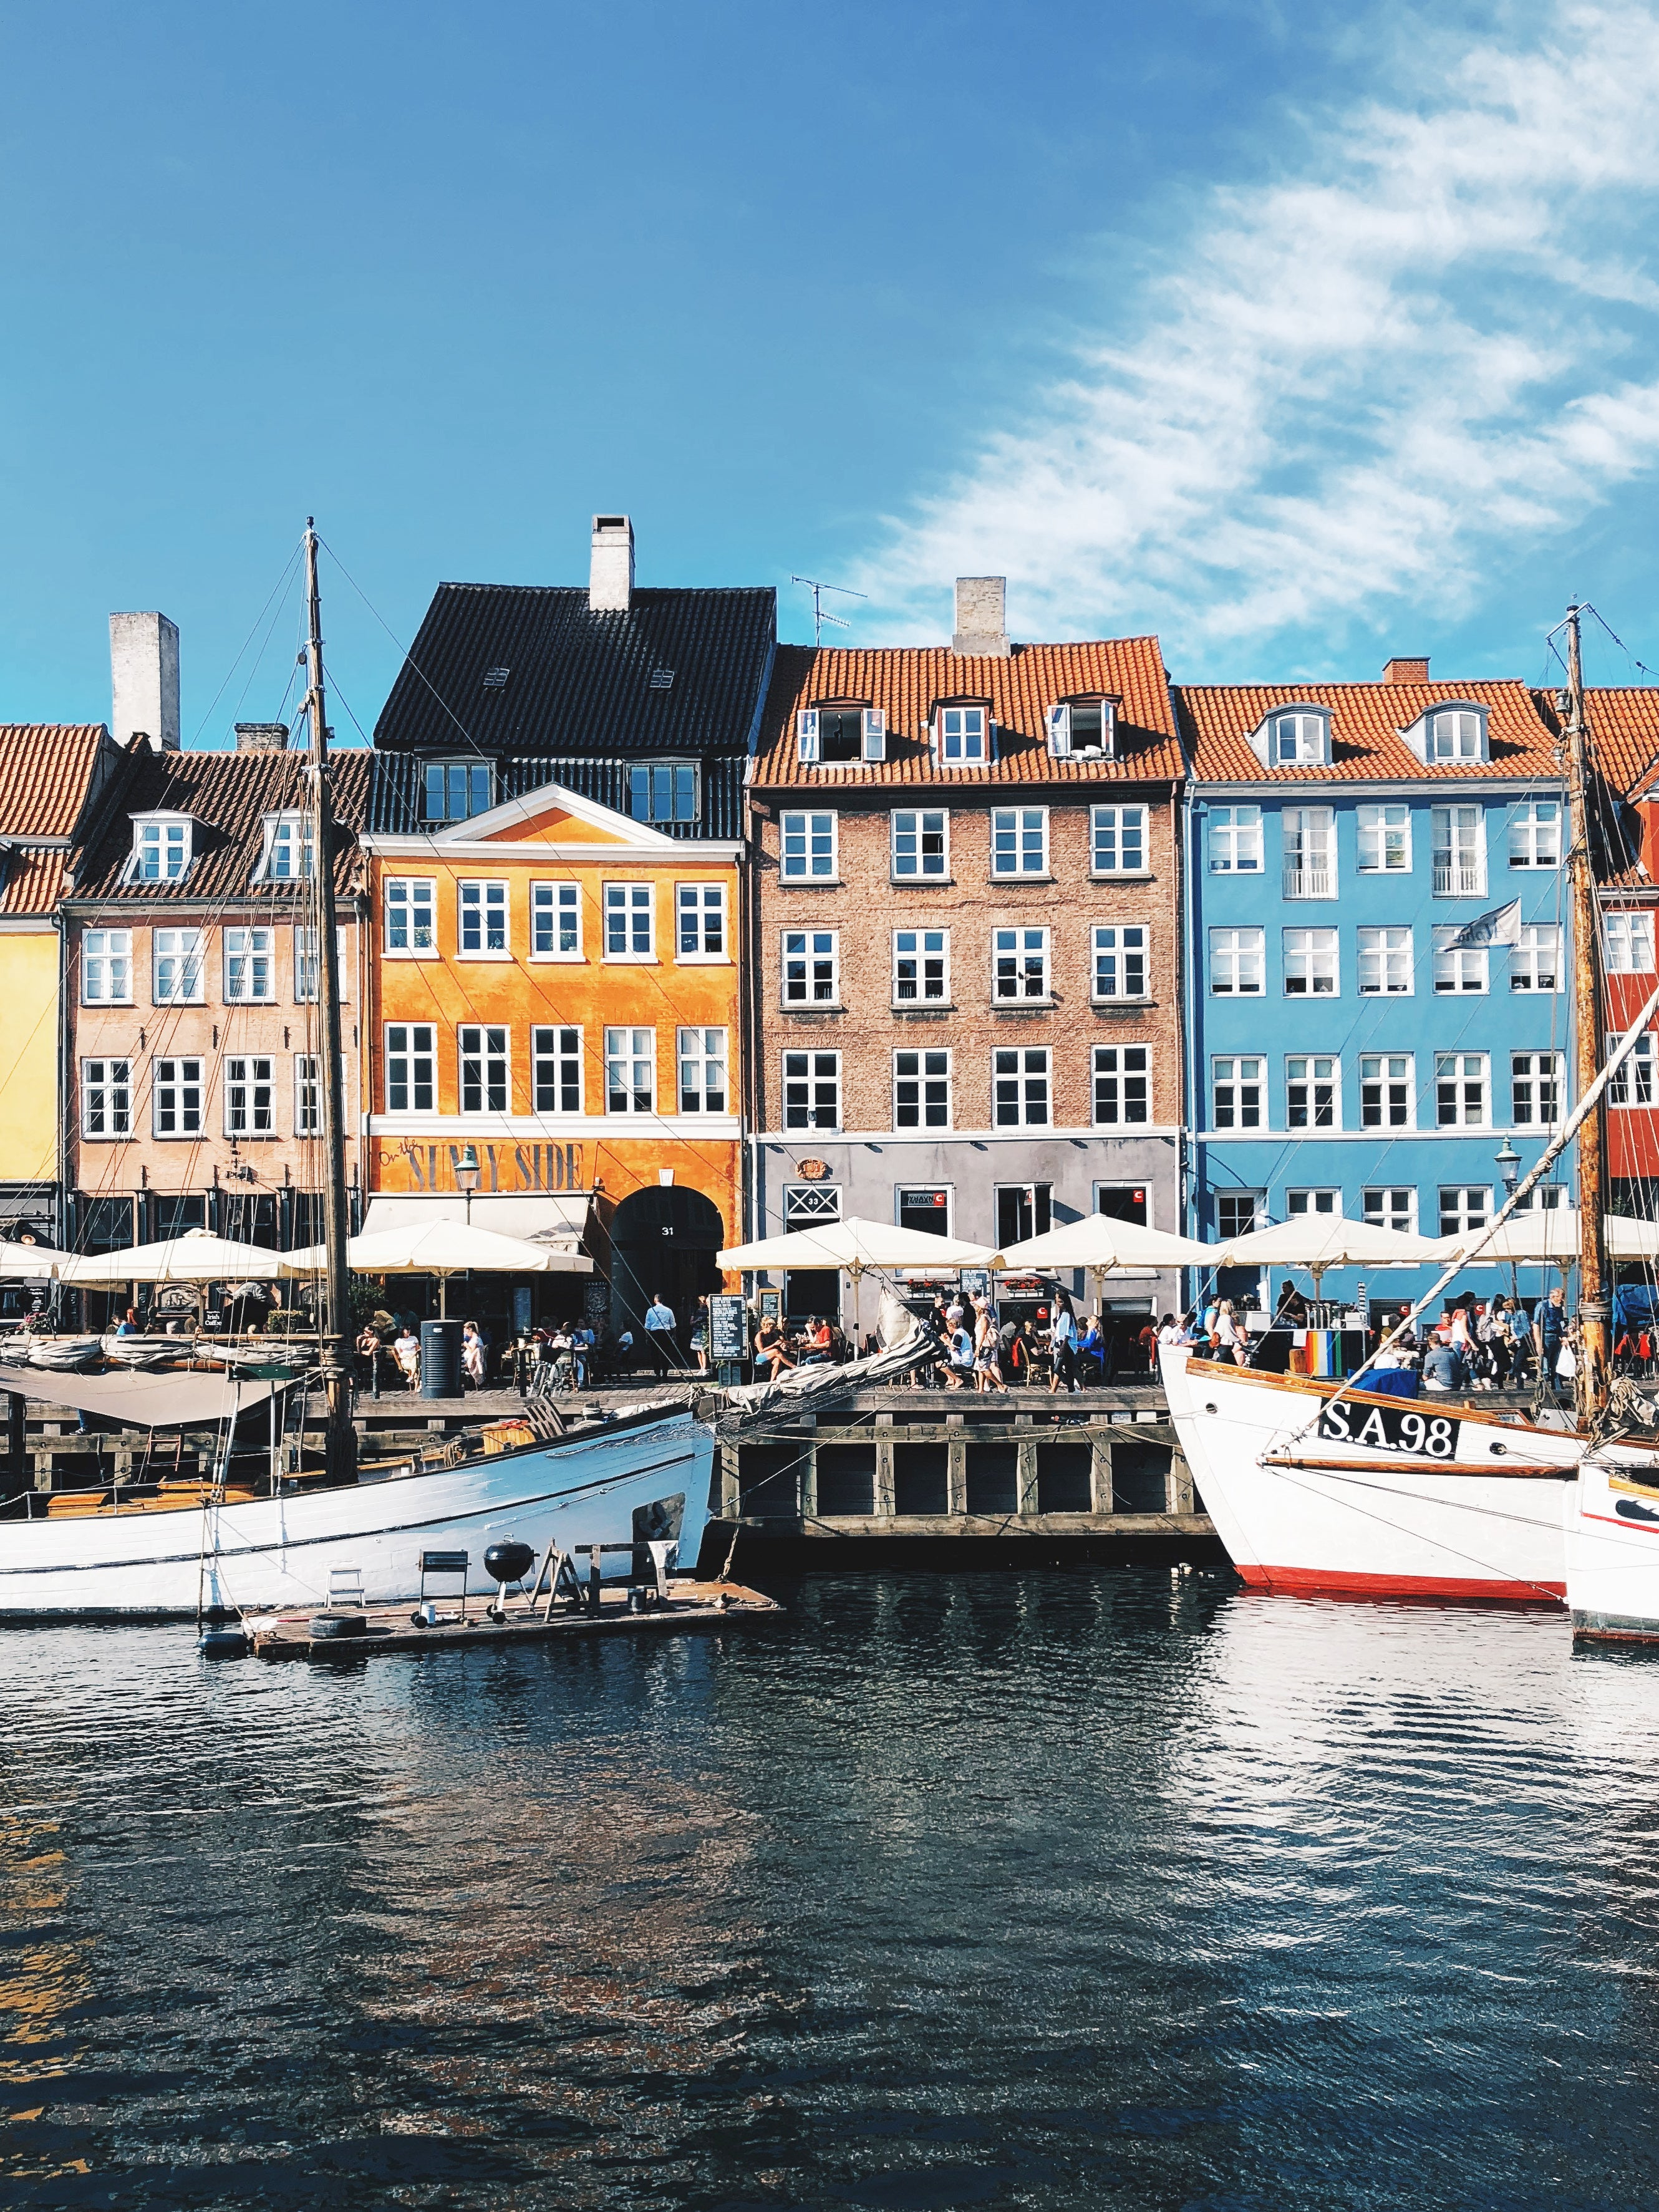 IKEA Wants to Send You to Denmark to Find the Key to Happiness